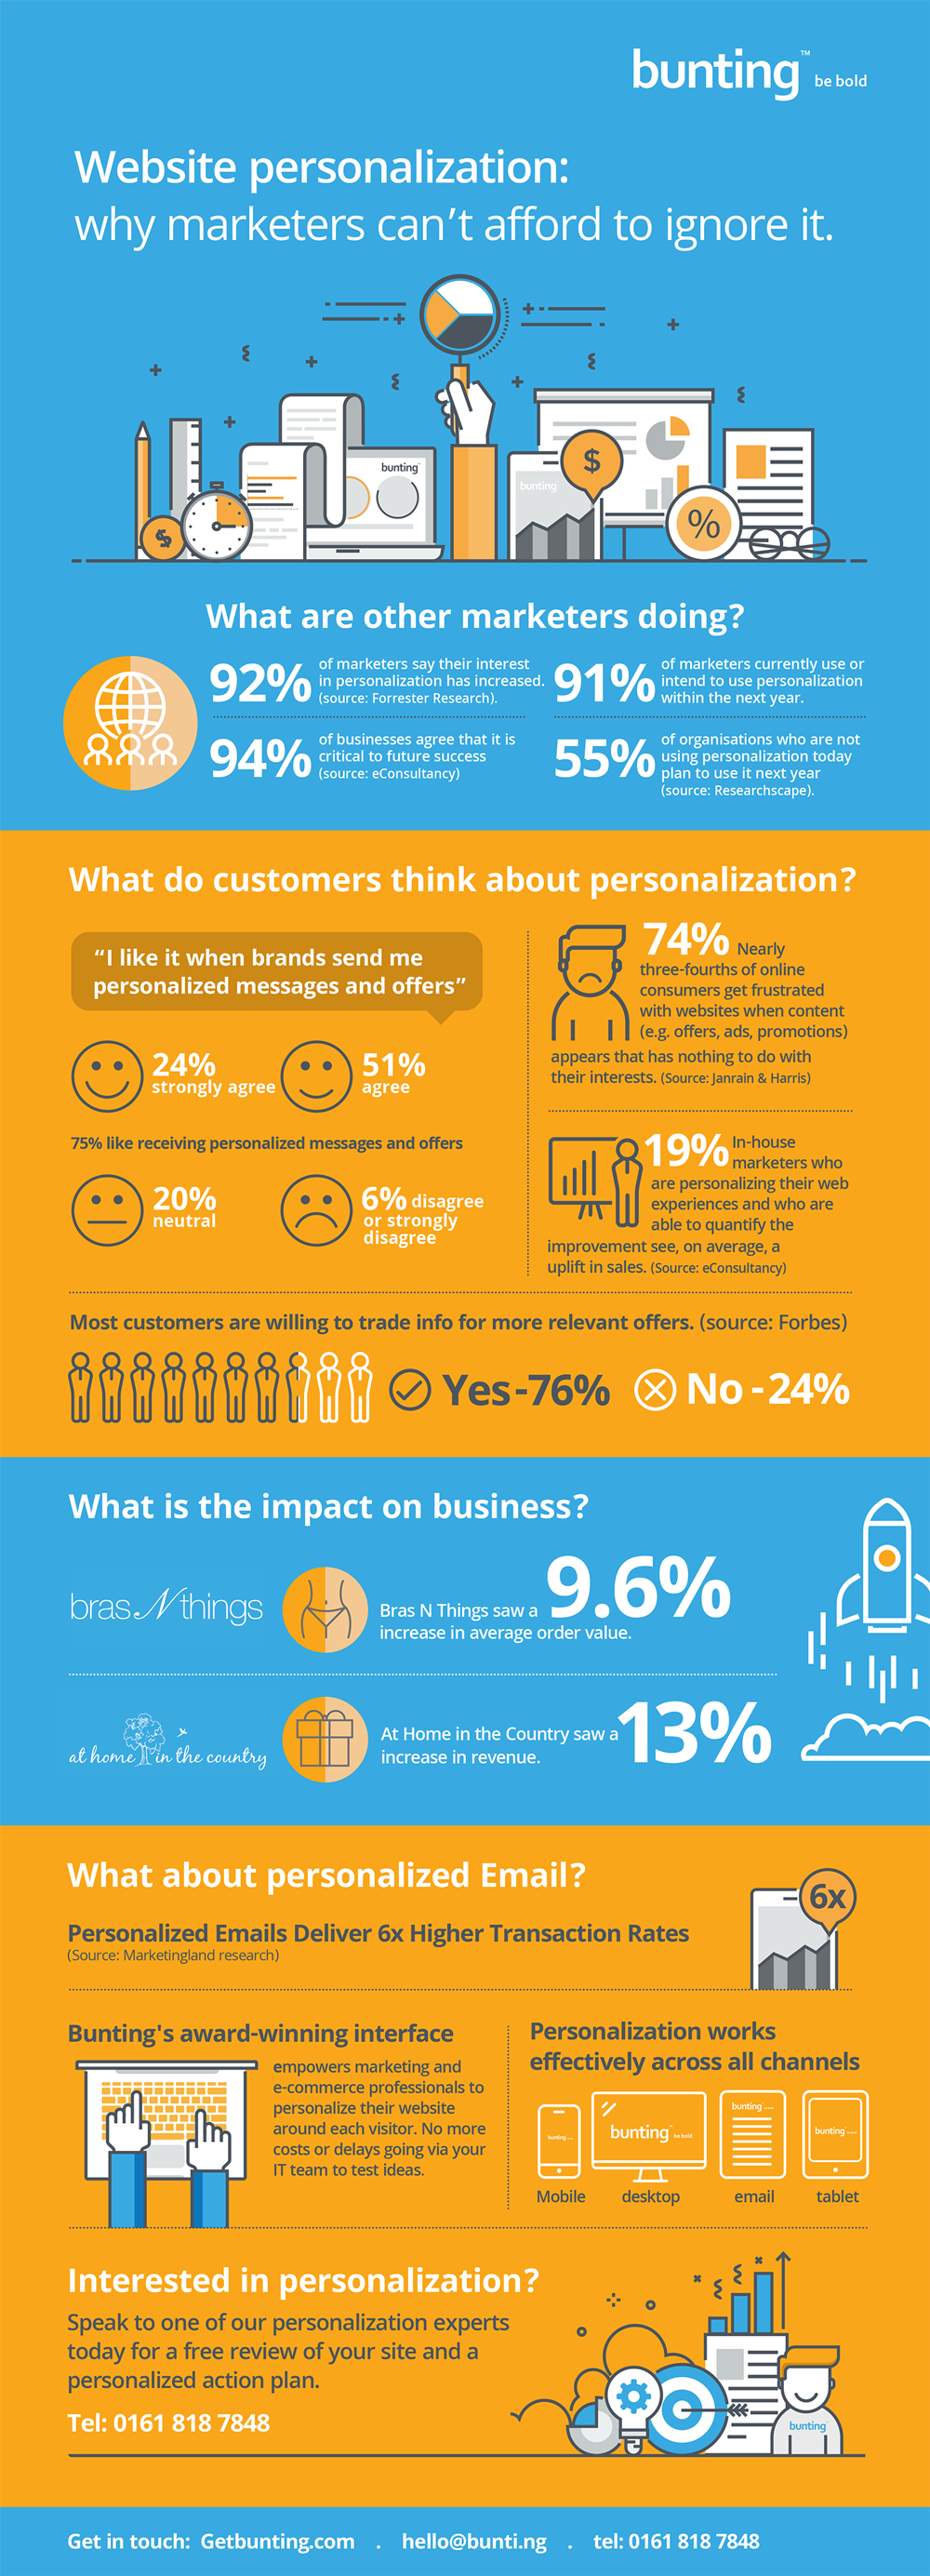 website personalization infographic